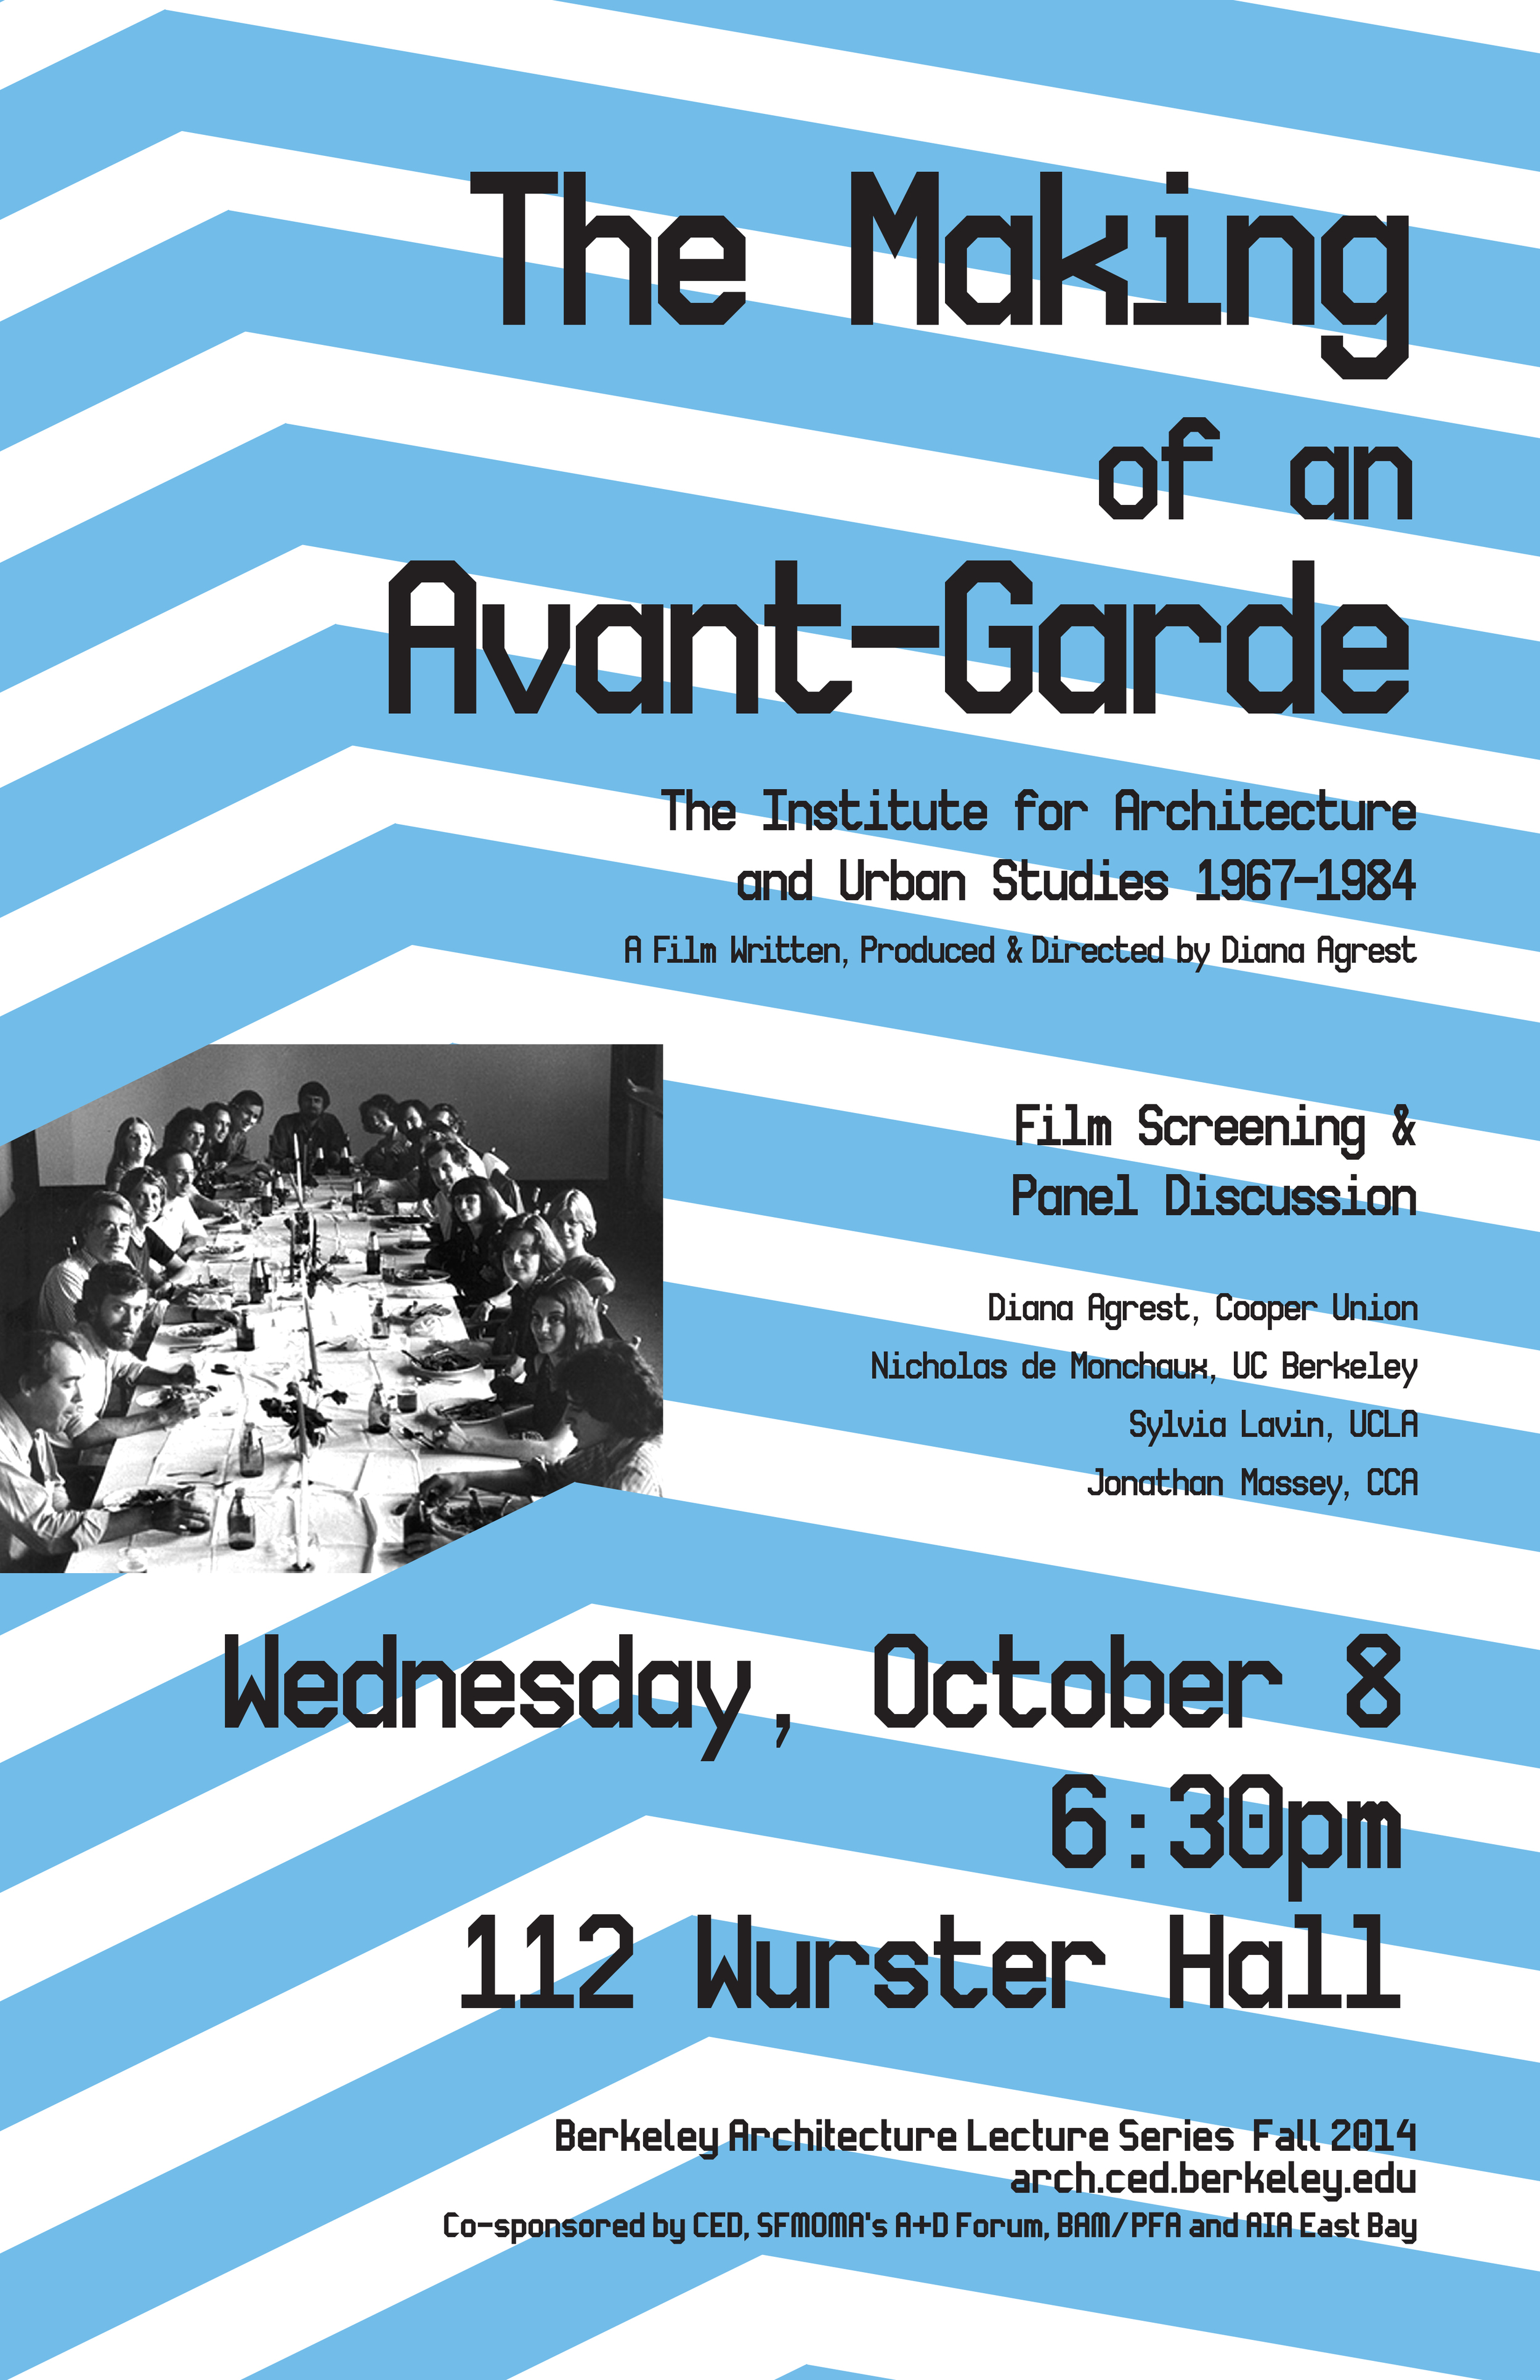 ARCH lecture Fall 14_Making of an Avant Garde v3.jpg